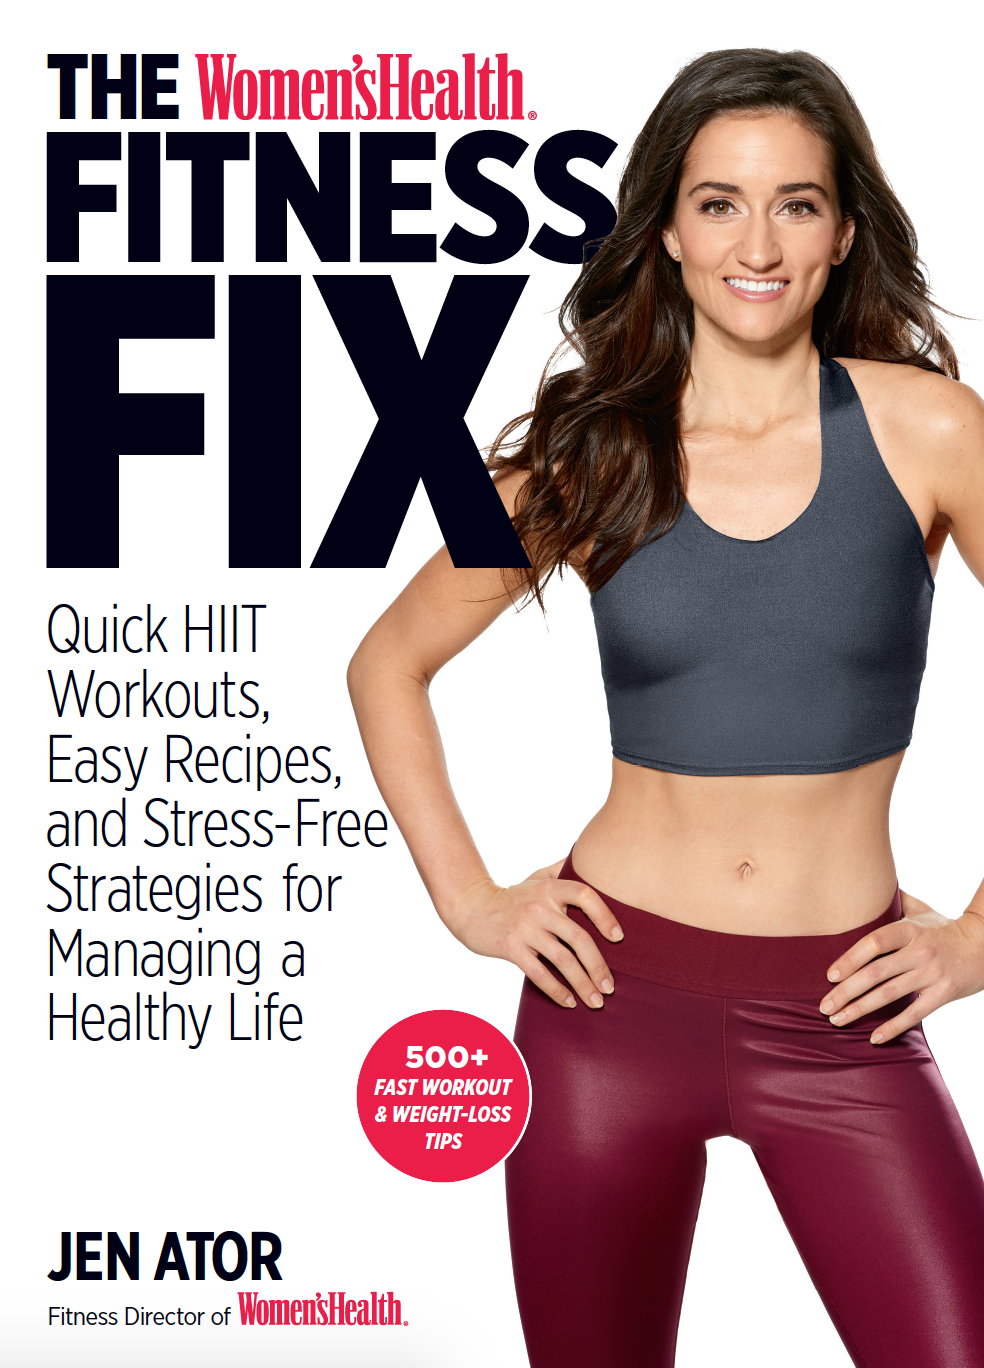 Book: The Fitness Fix